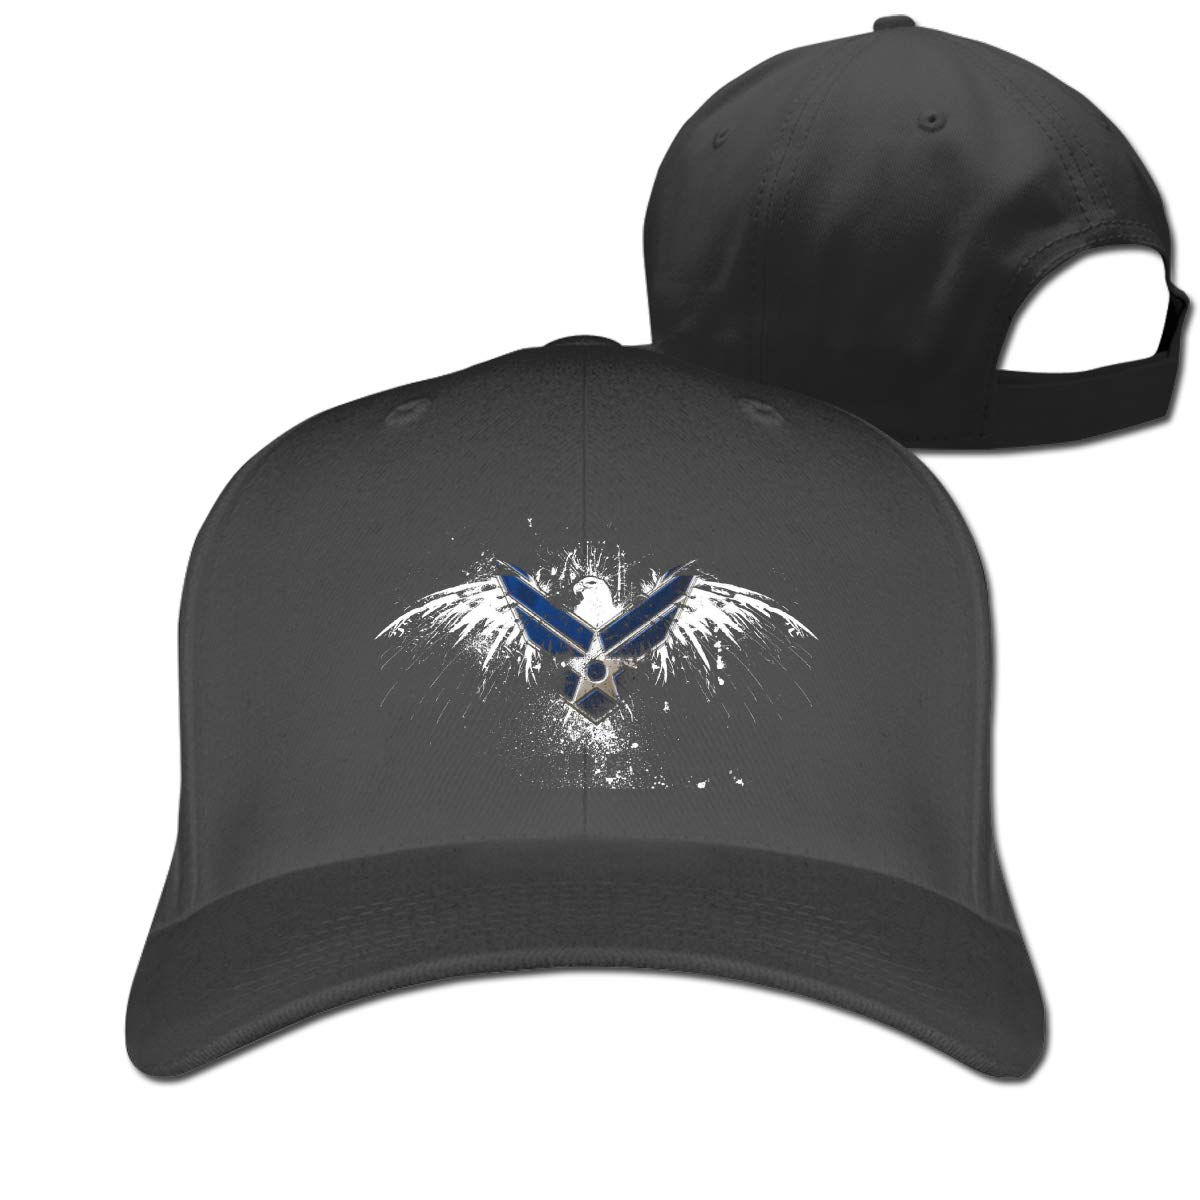 US Air Force Logo Eagle Fashion Adjustable Cotton Baseball Caps Trucker Driver Hat Outdoor Cap Black